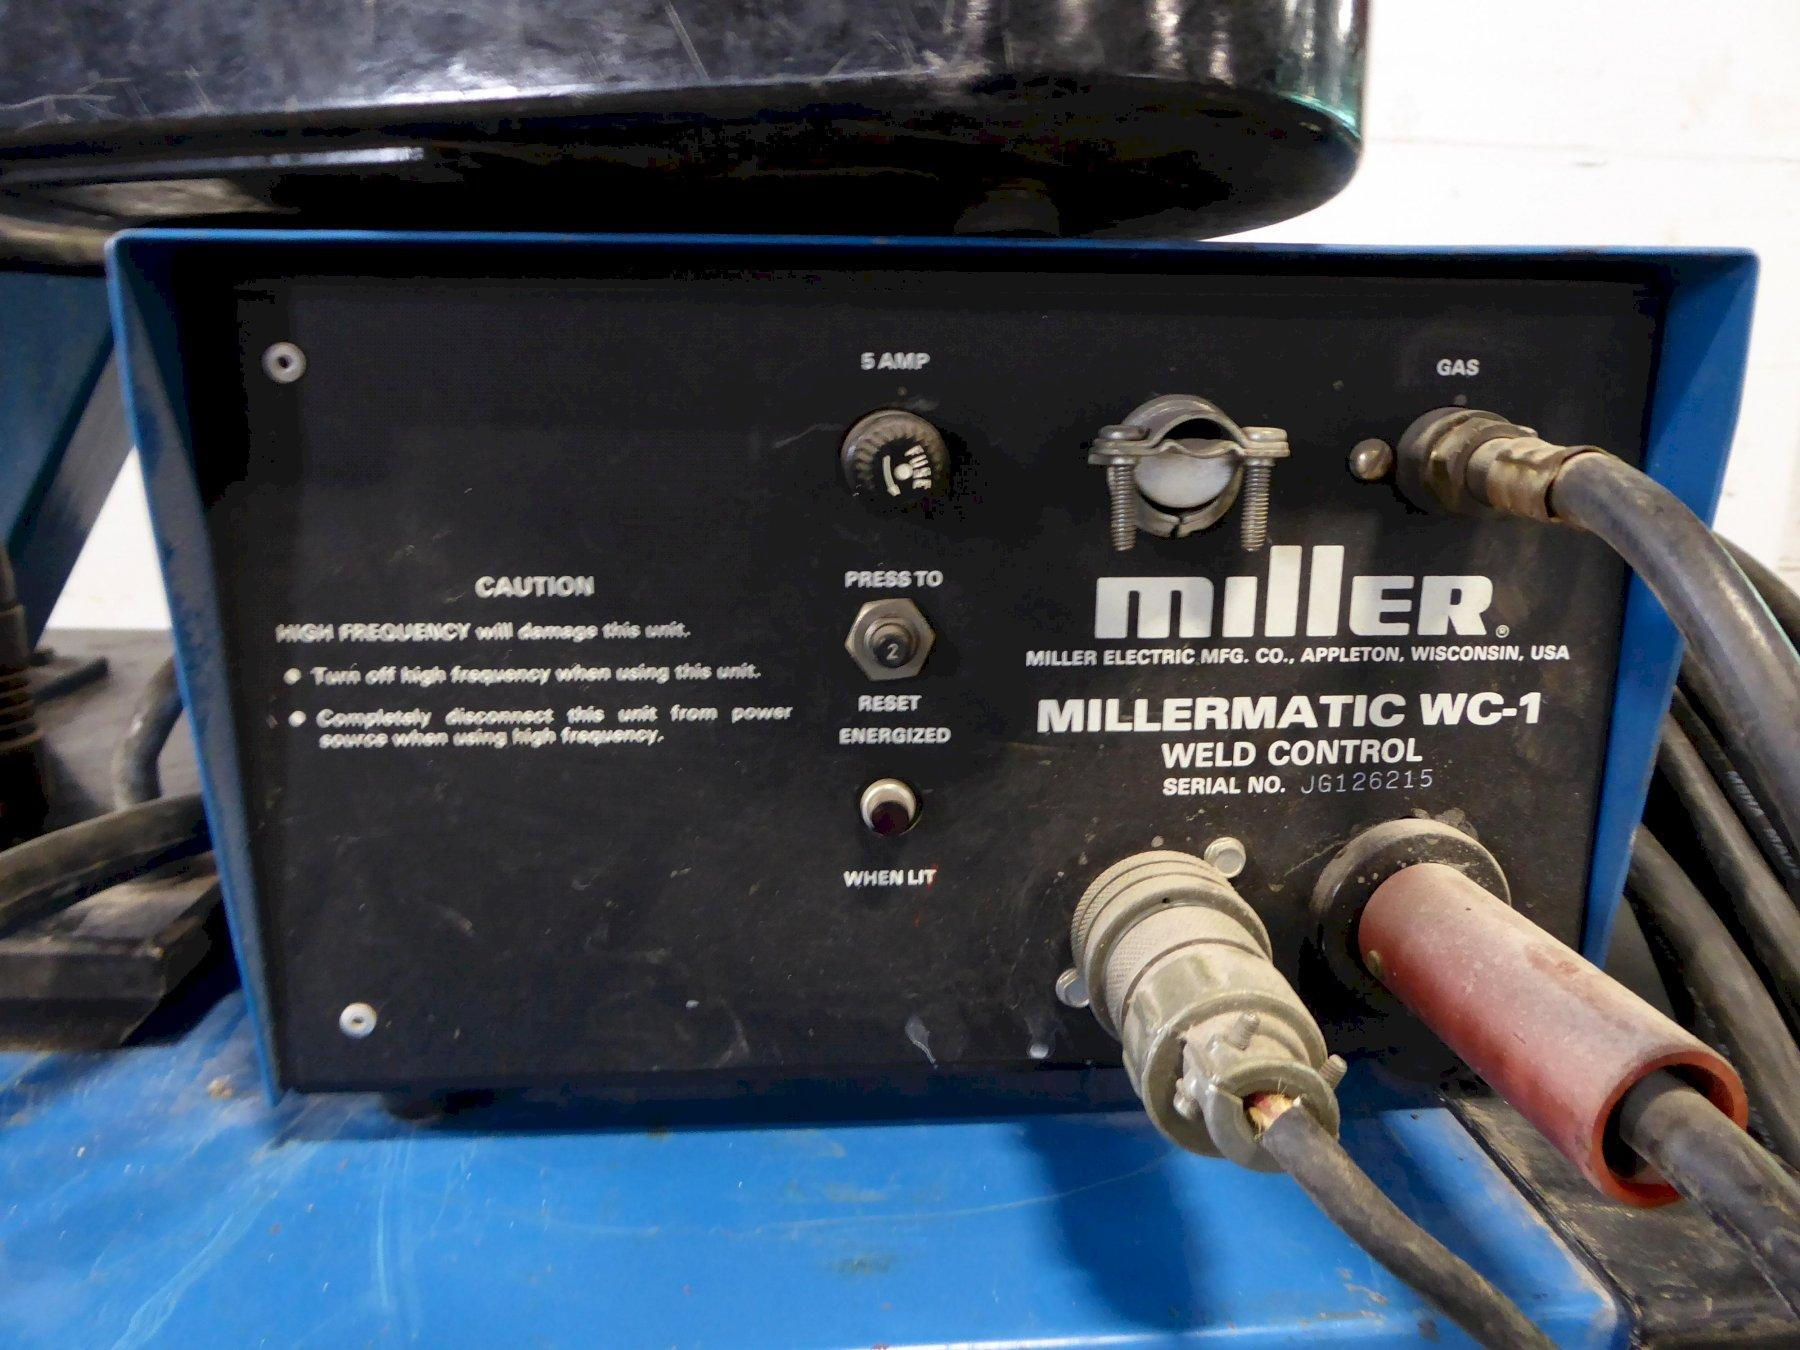 200 Amp Miller CP-200 Constant Potential DC Arc Welding Source, 10A Feed, Spoolmatic 1 Gun